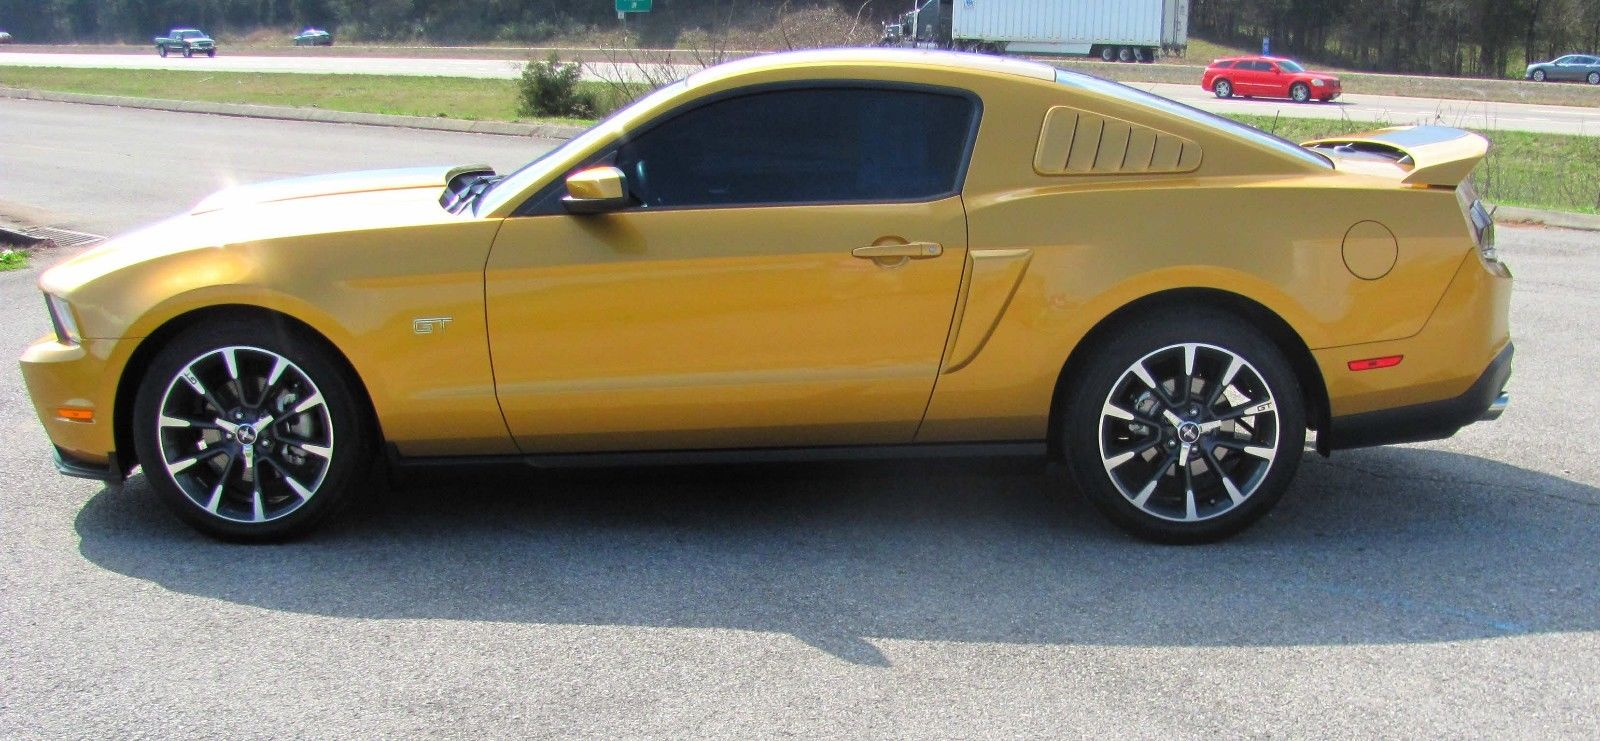 Great 2010 Ford Mustang GT Premium 2010 Ford Mustang GT. 5 Speed manual.  Excellent Condition 12,330 Miles. 1 owner 2017/2018